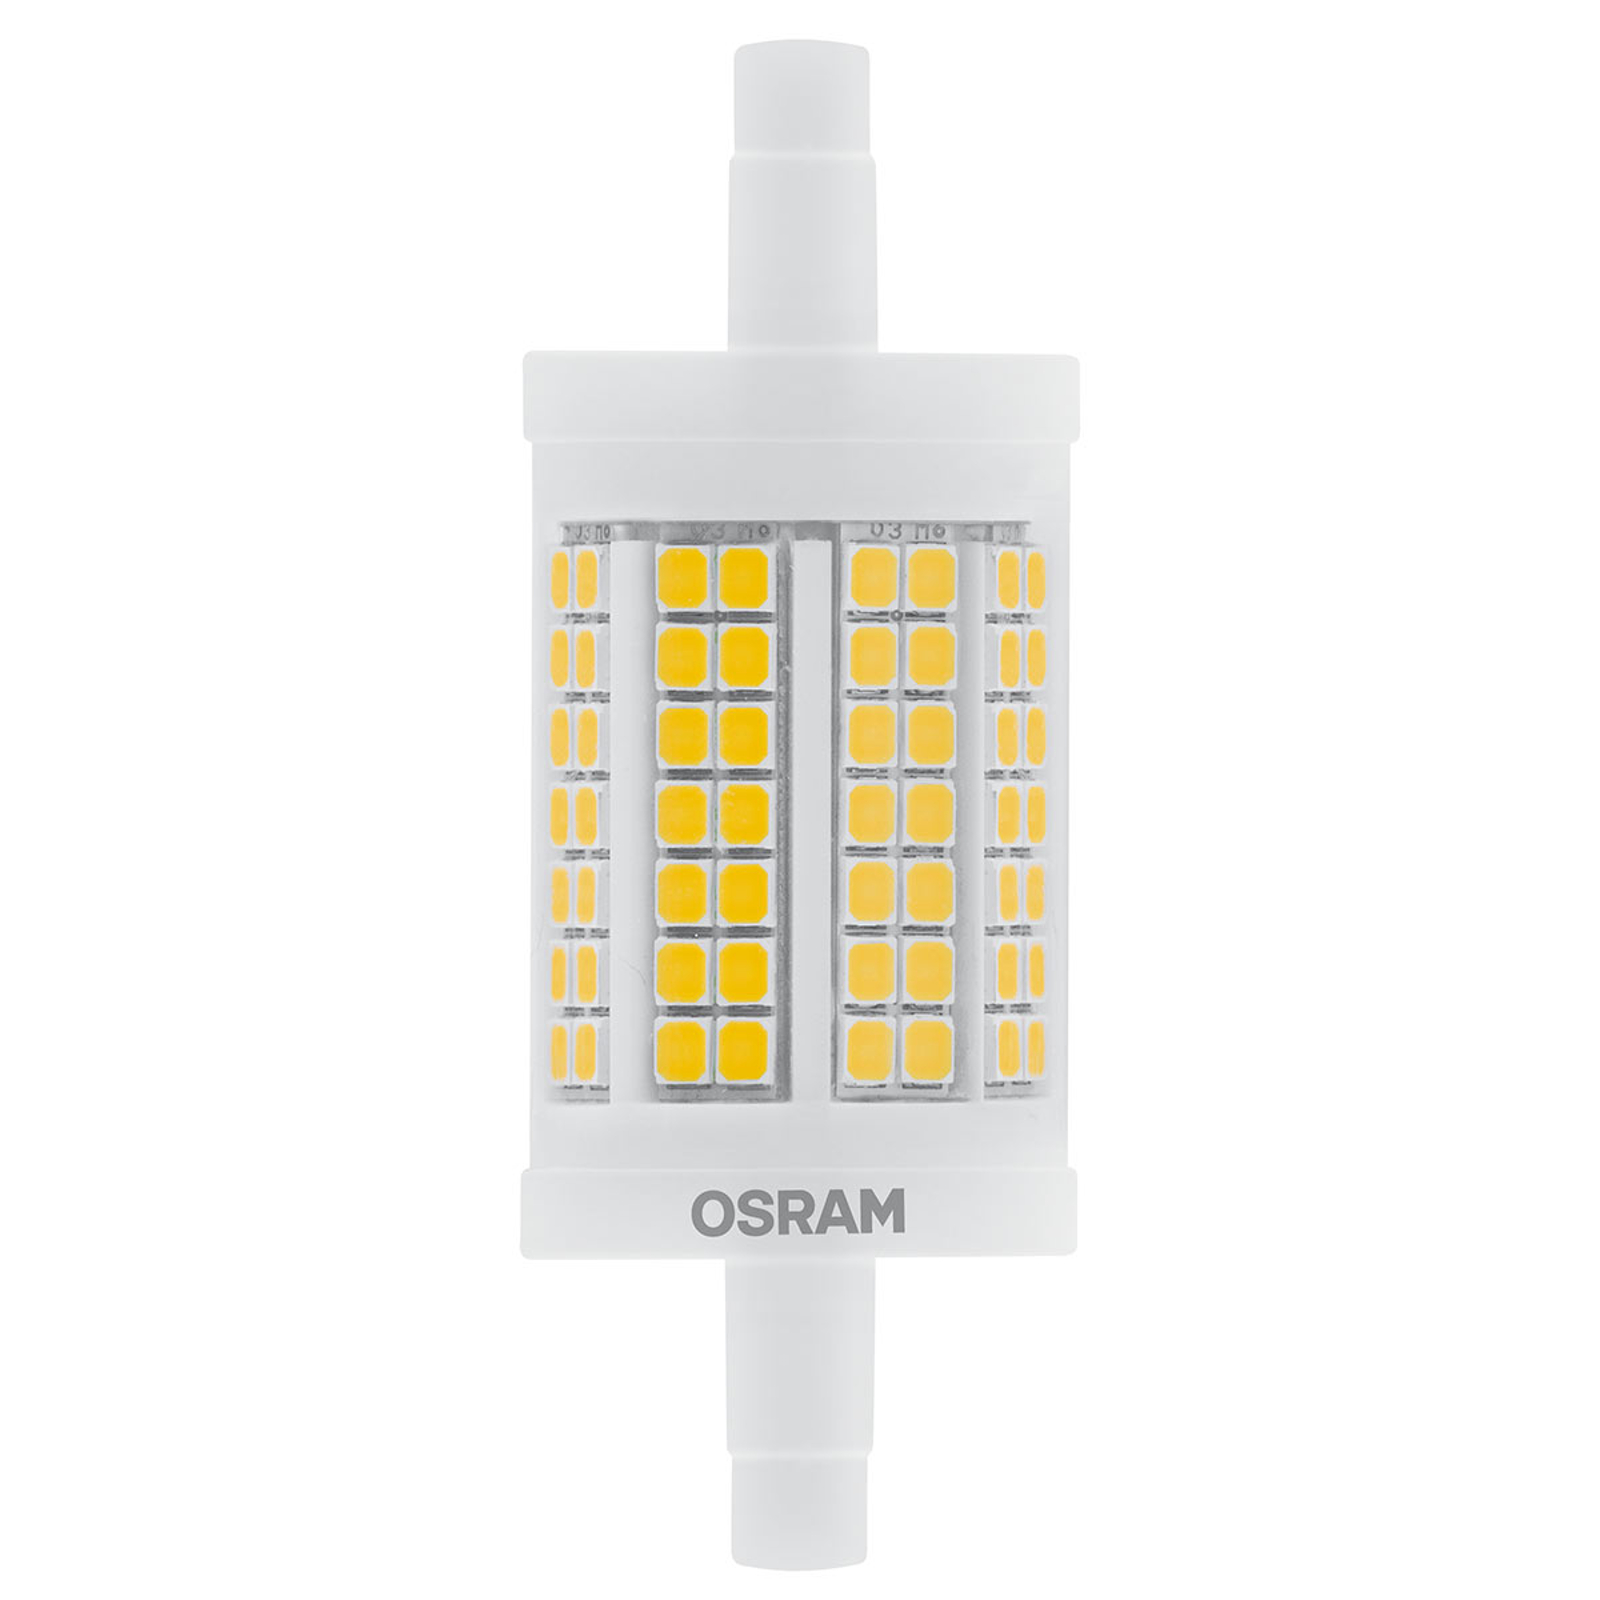 OSRAM tube LED R7s 11,5W 7,8cm 827 dimmable